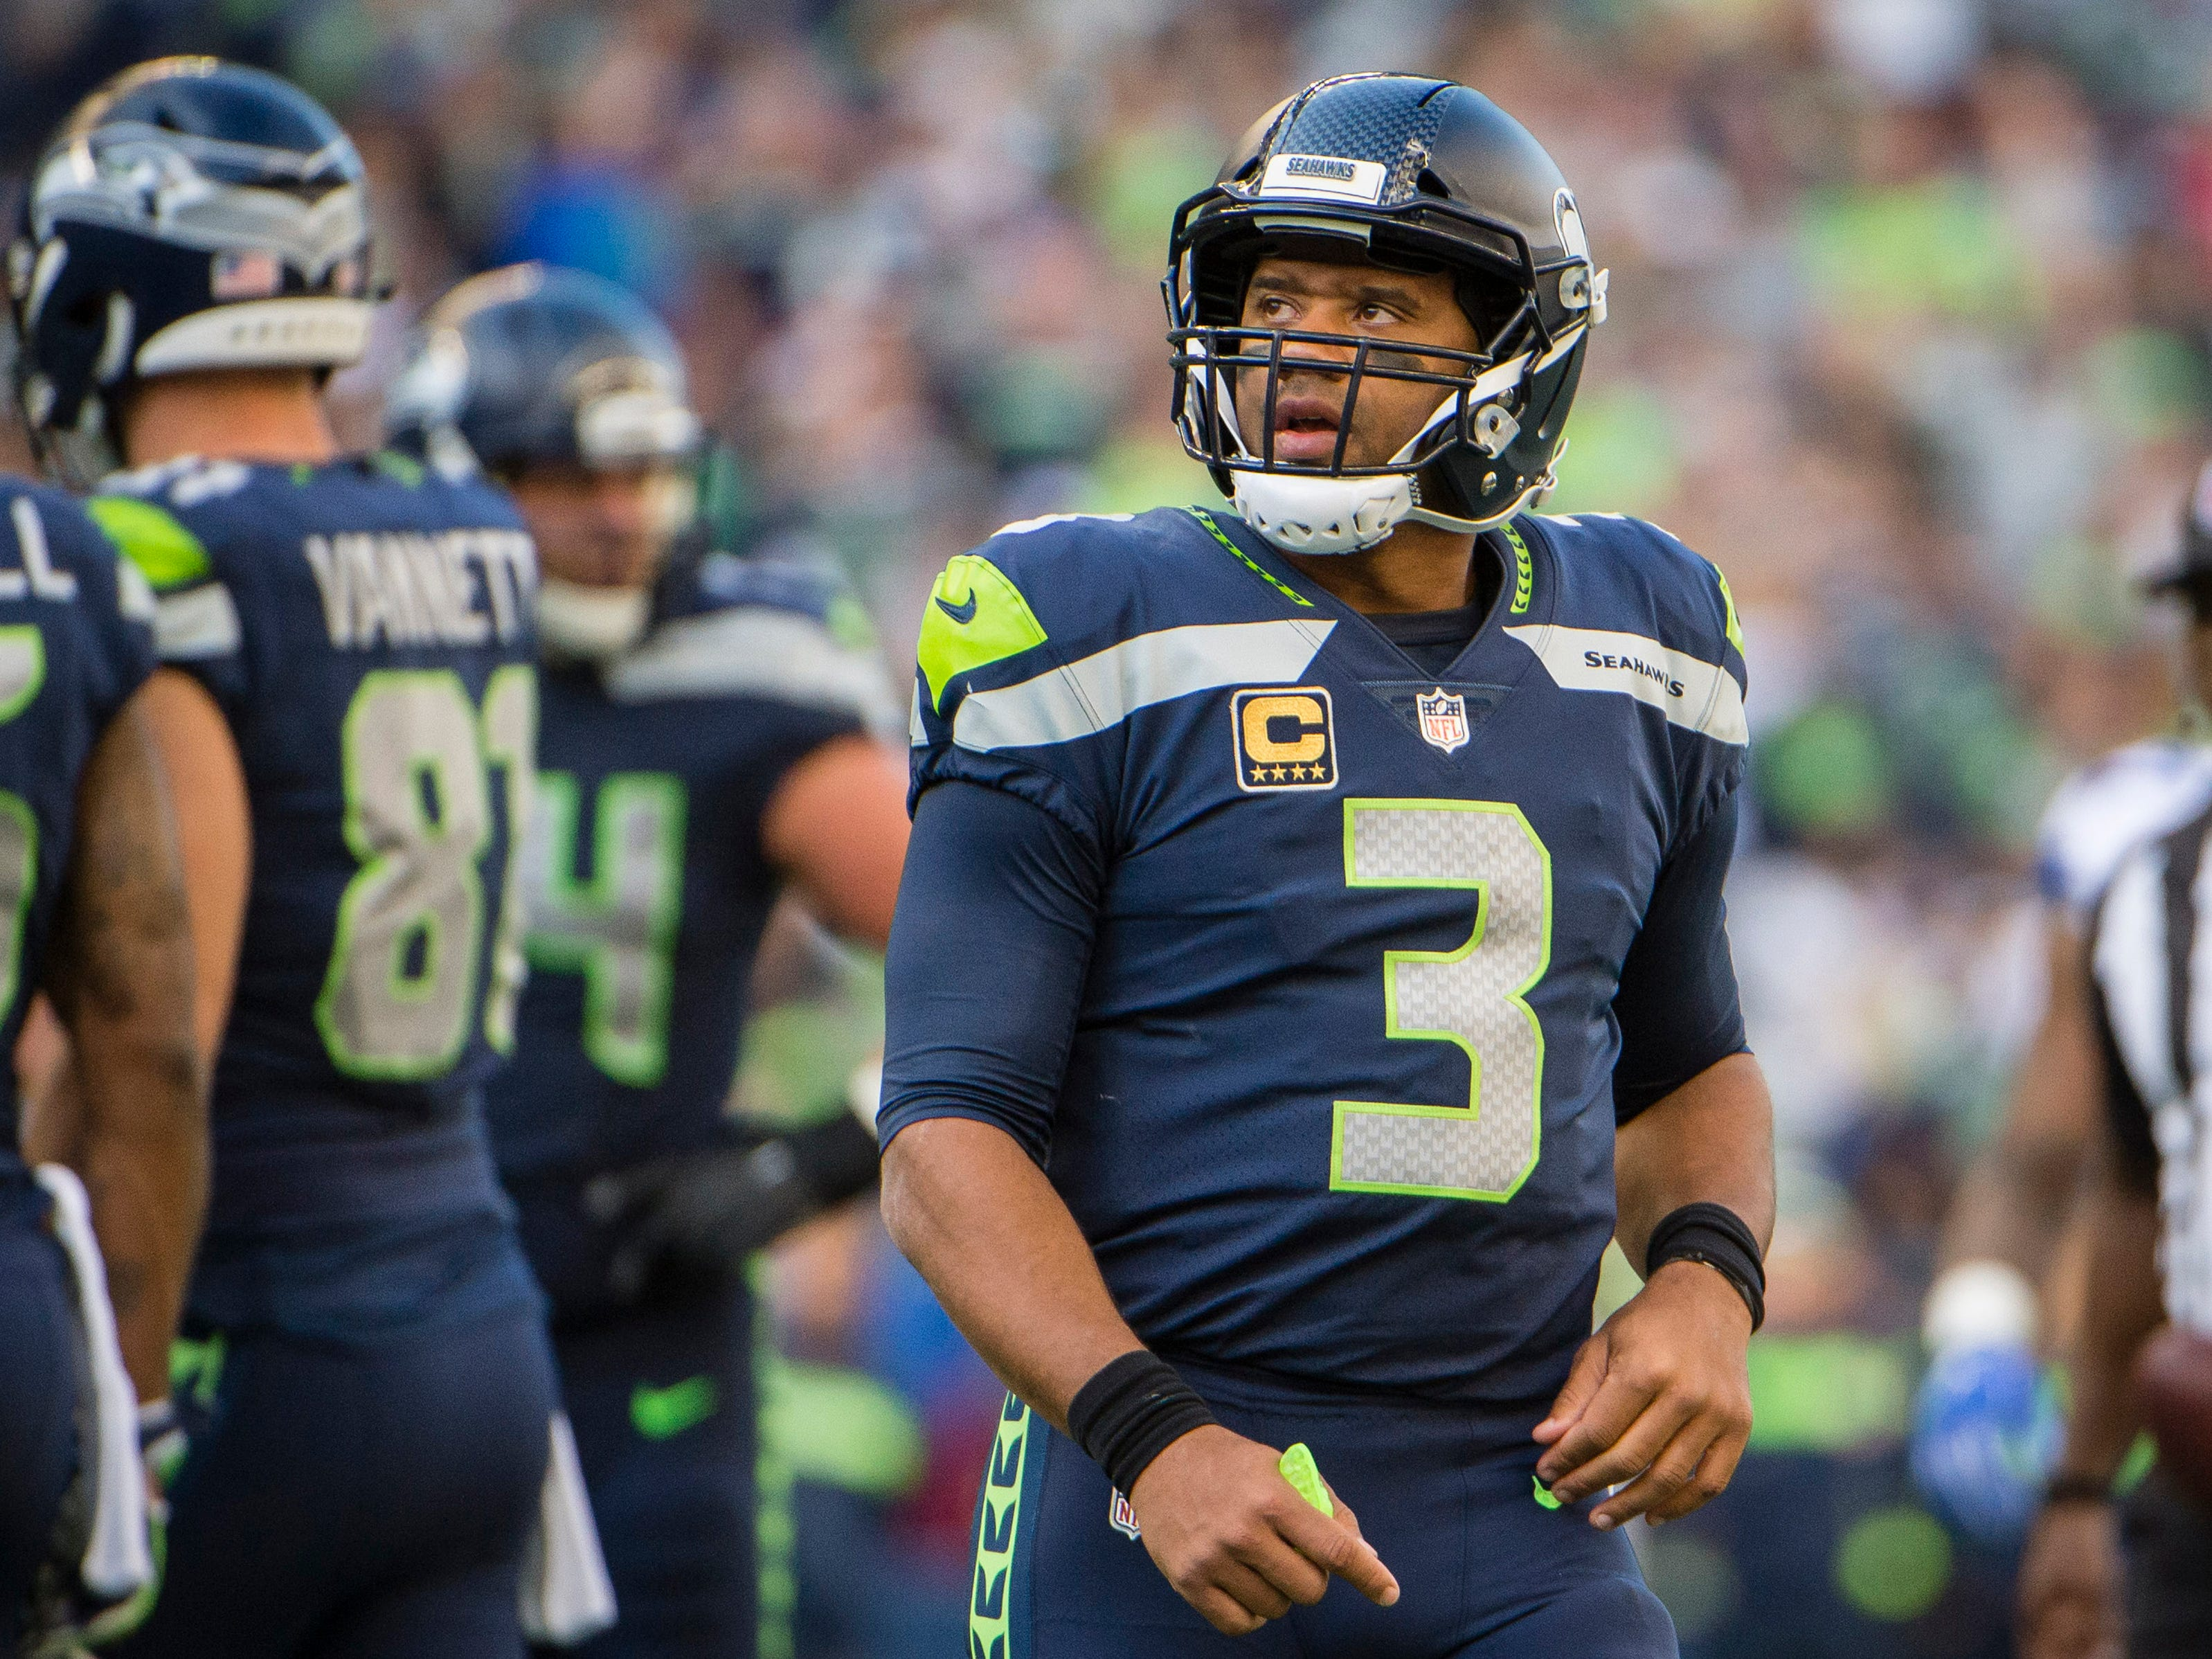 25. Seahawks (29): Russell Wilson is on pace to absorb 75 sacks, which would be one shy of David Carr's unfortunate record-setting season in 2002.